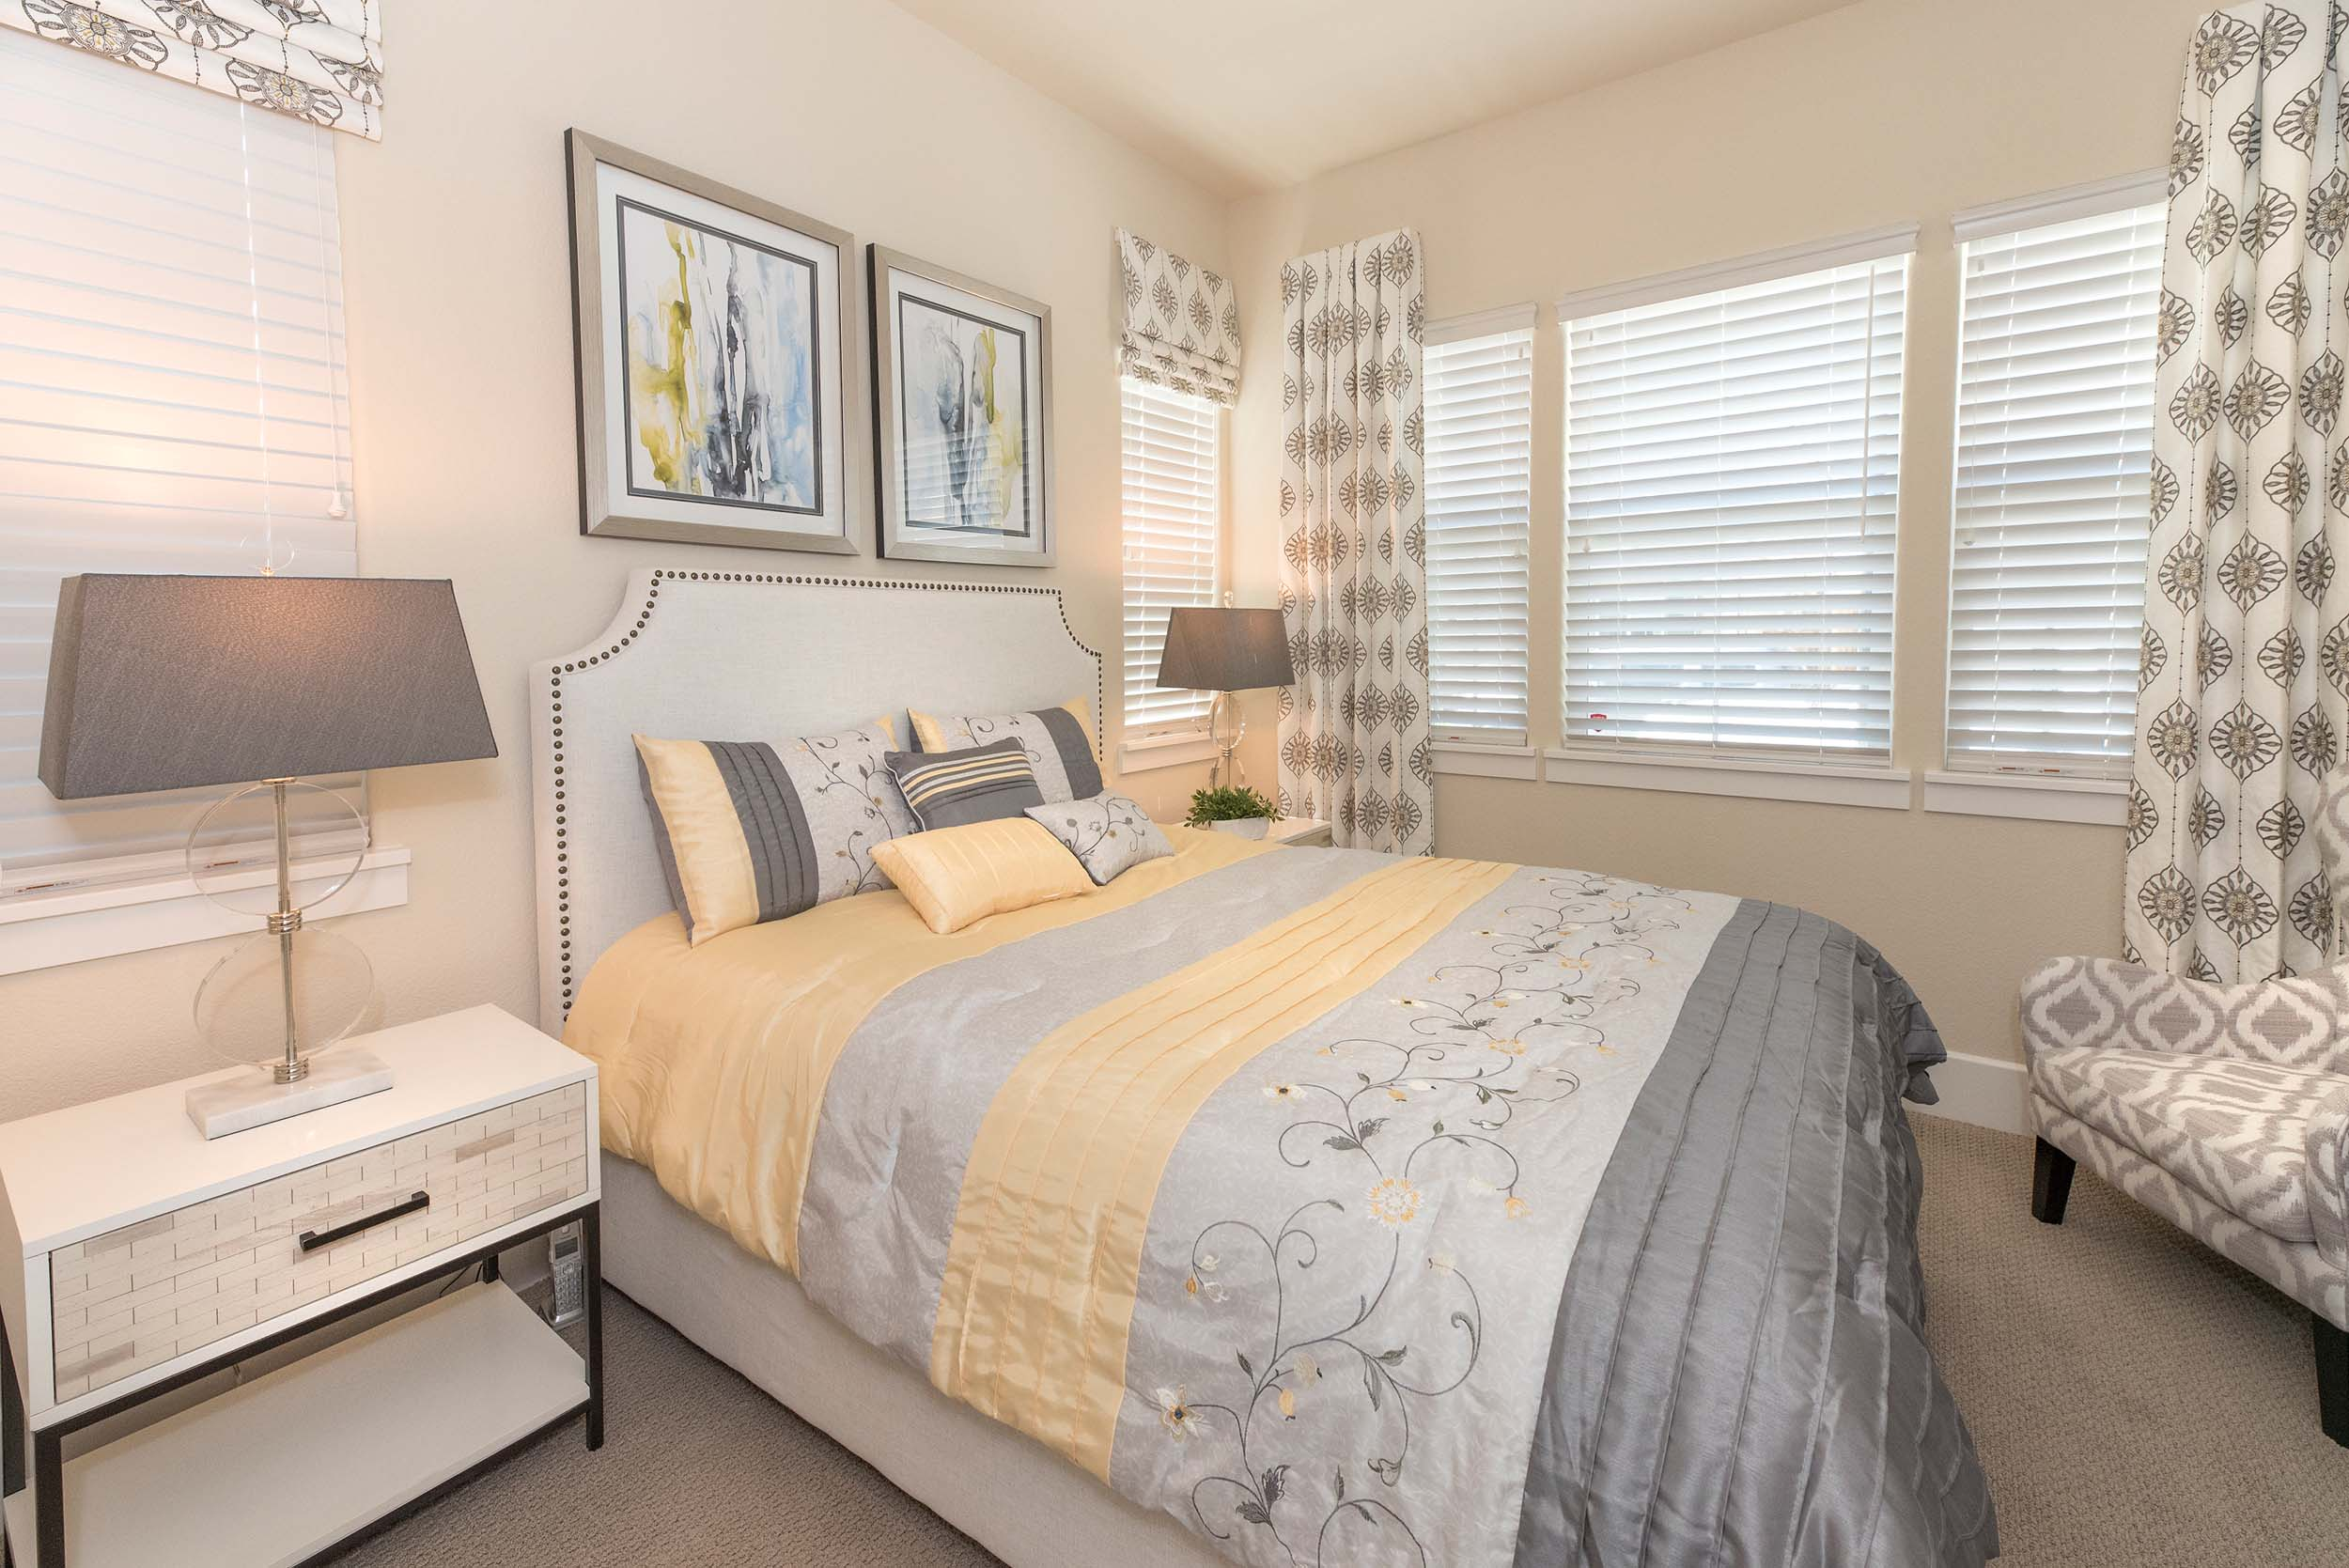 Bedroom with bedside table, table lamps and frames on the wall